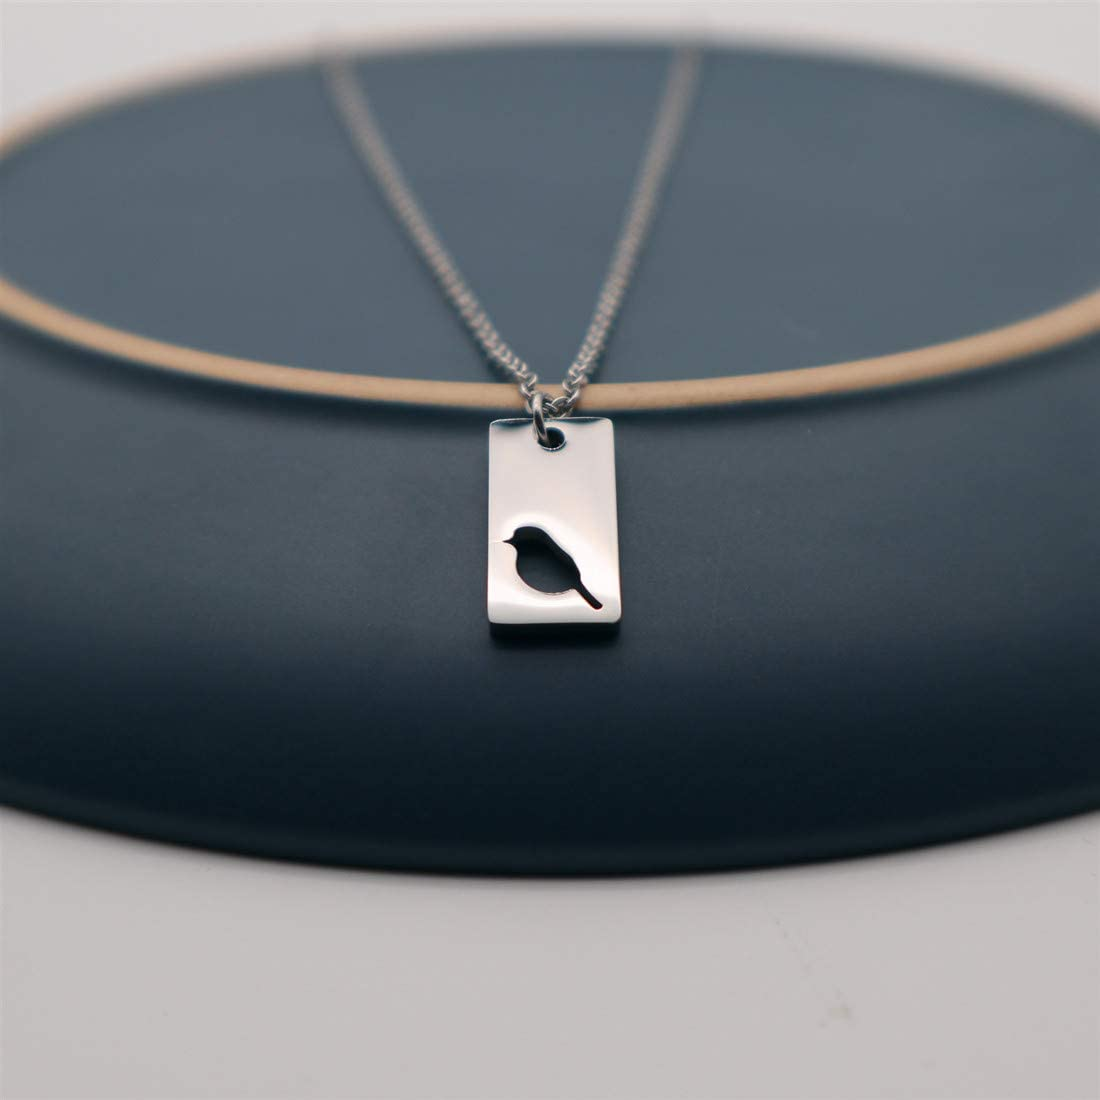 NIANXIN Mother Daughter Necklace Set Little Bird Silver Necklace Set Mothers Day Mother Daughter Gift